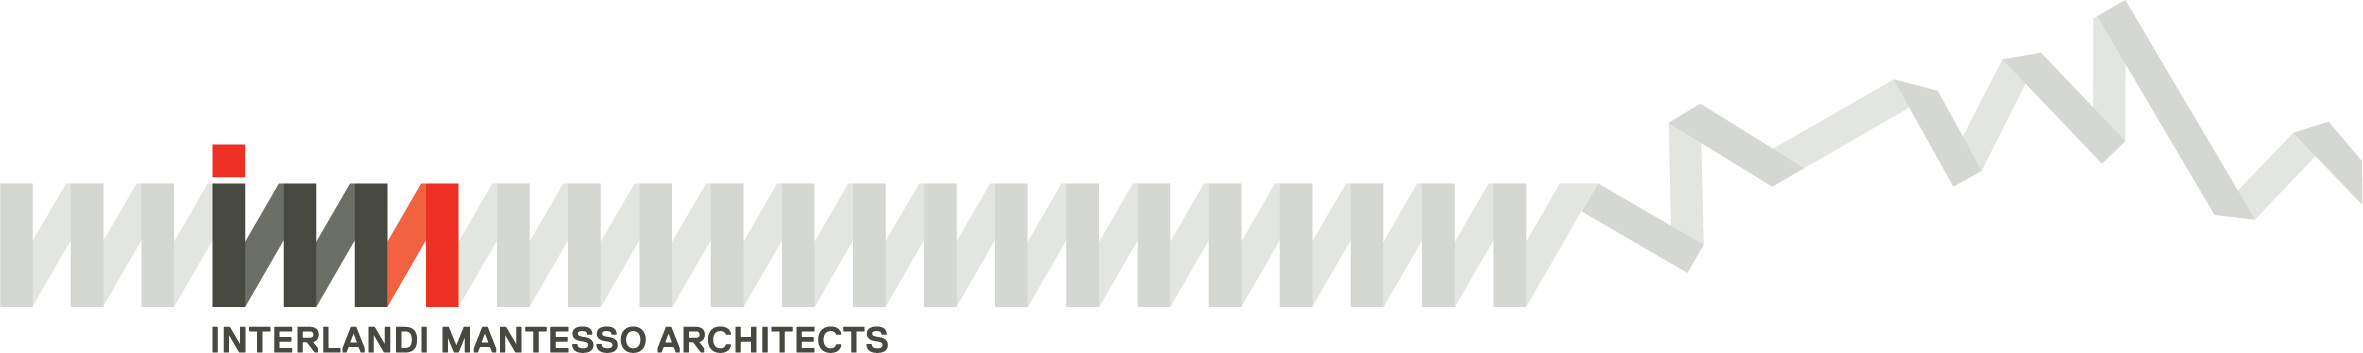 Interlandi Mantesso Architects logo